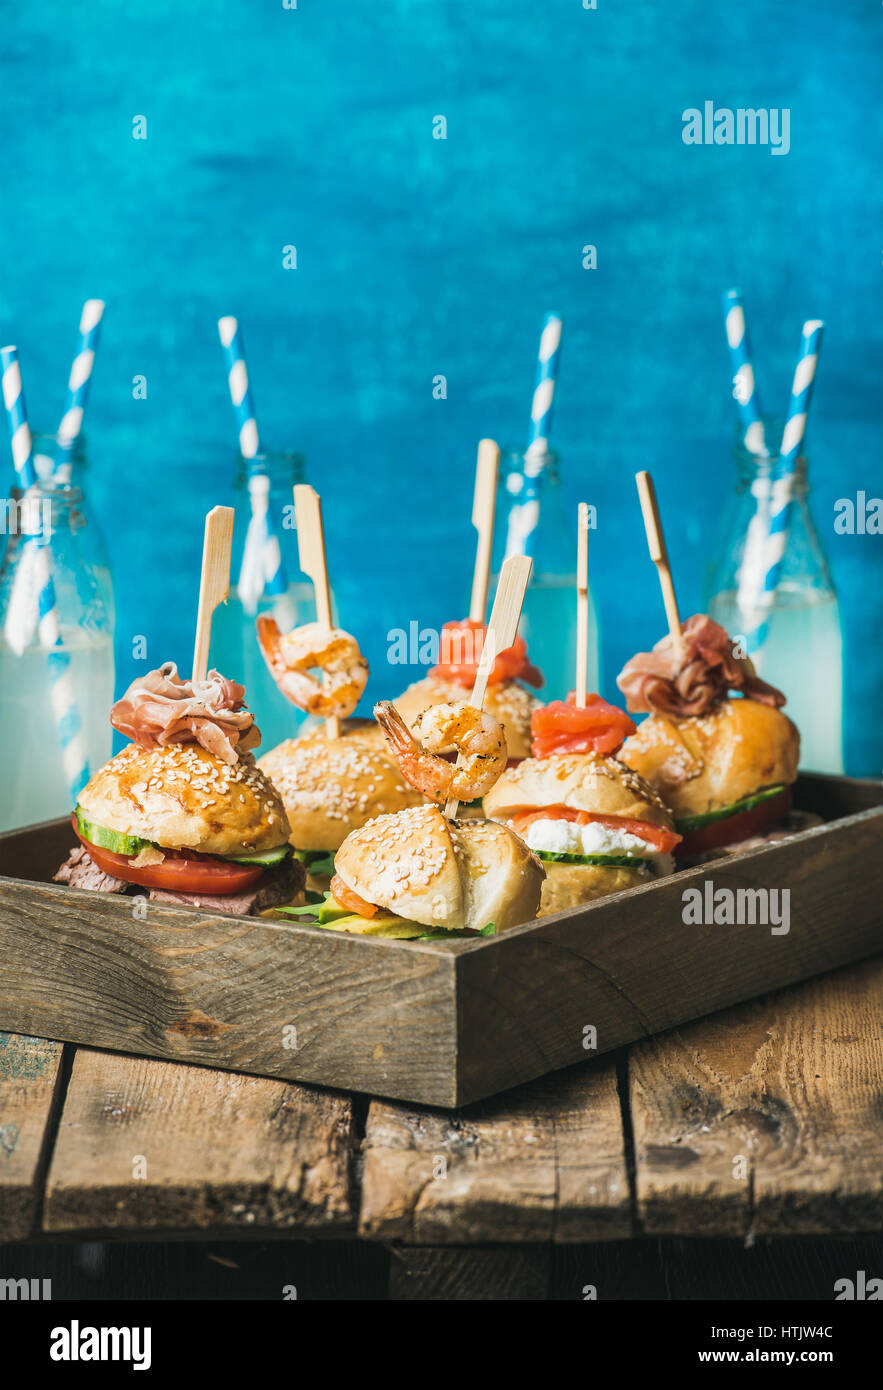 Different homemade burgers in wooden tray and lemonade in bottles - Stock Image